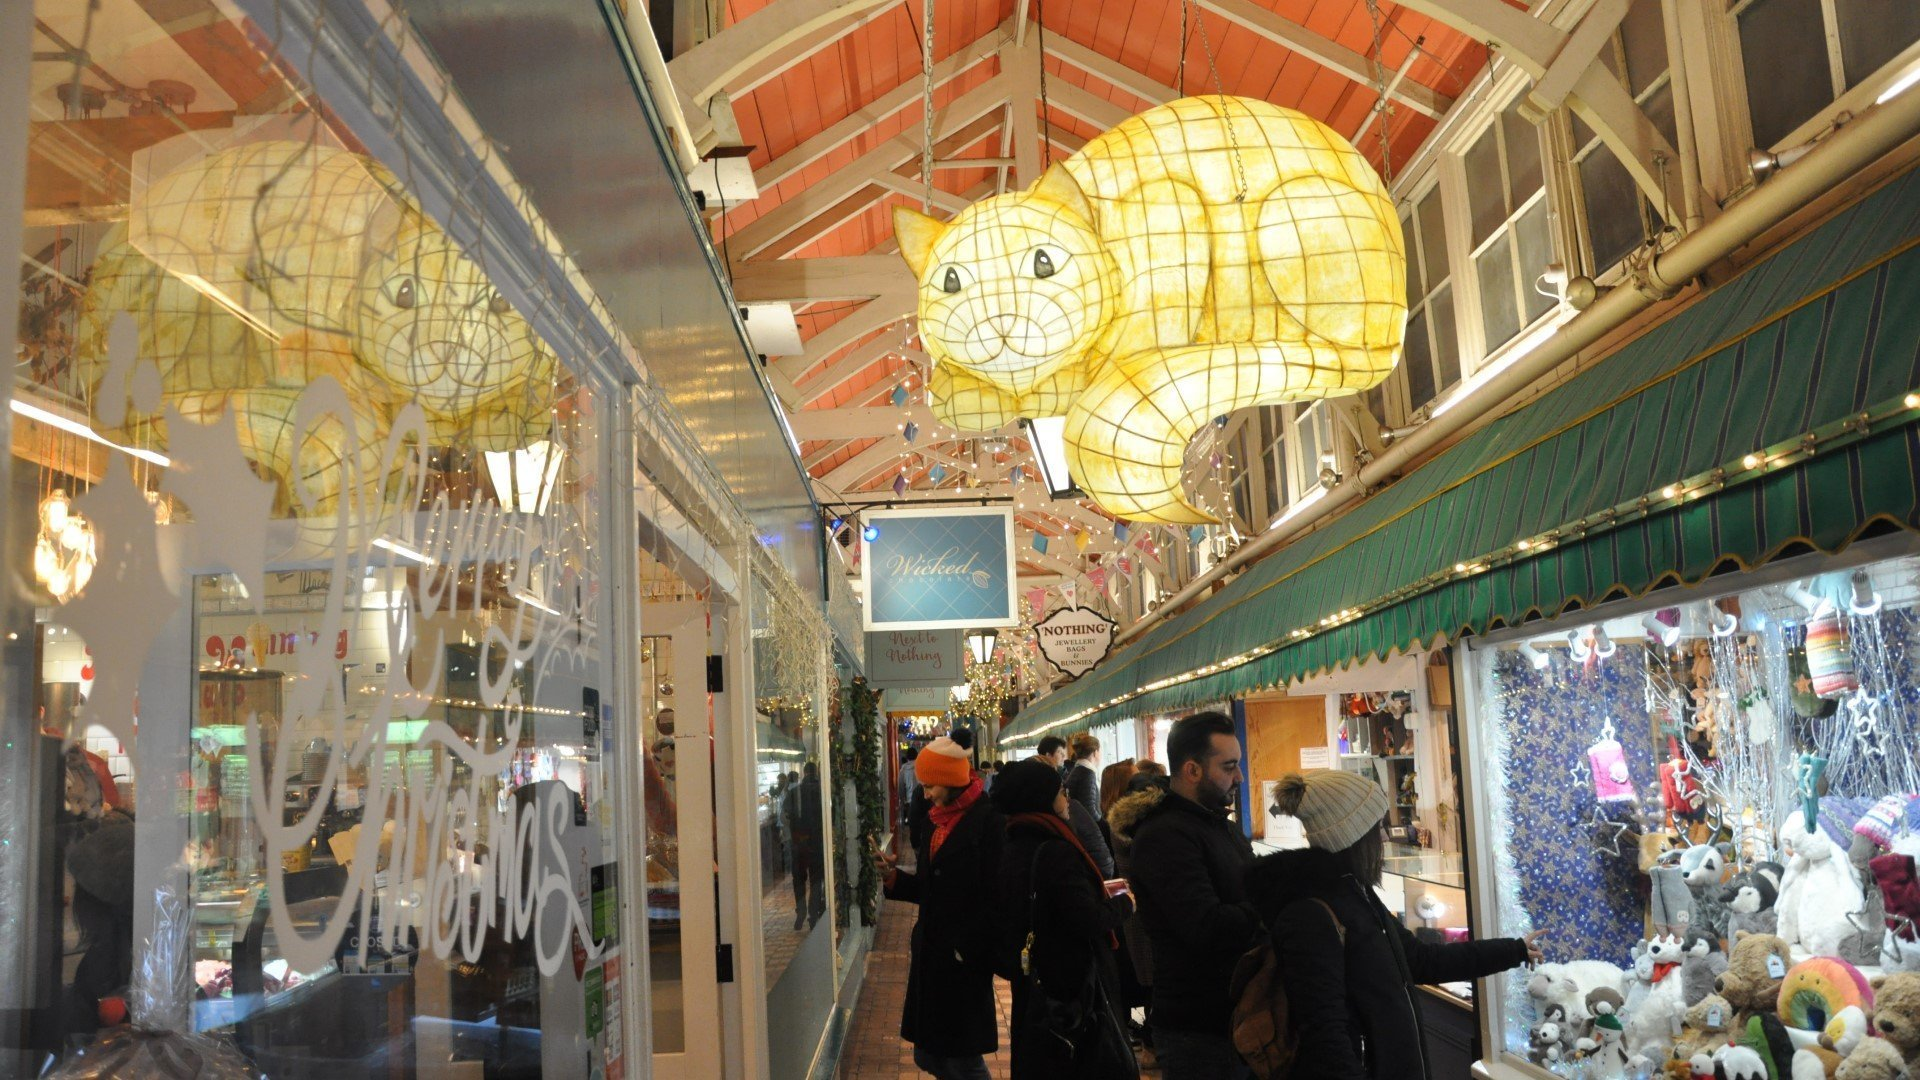 Non-essential shops in Oxford's Covered Market are set to reopen from Monday 12 April